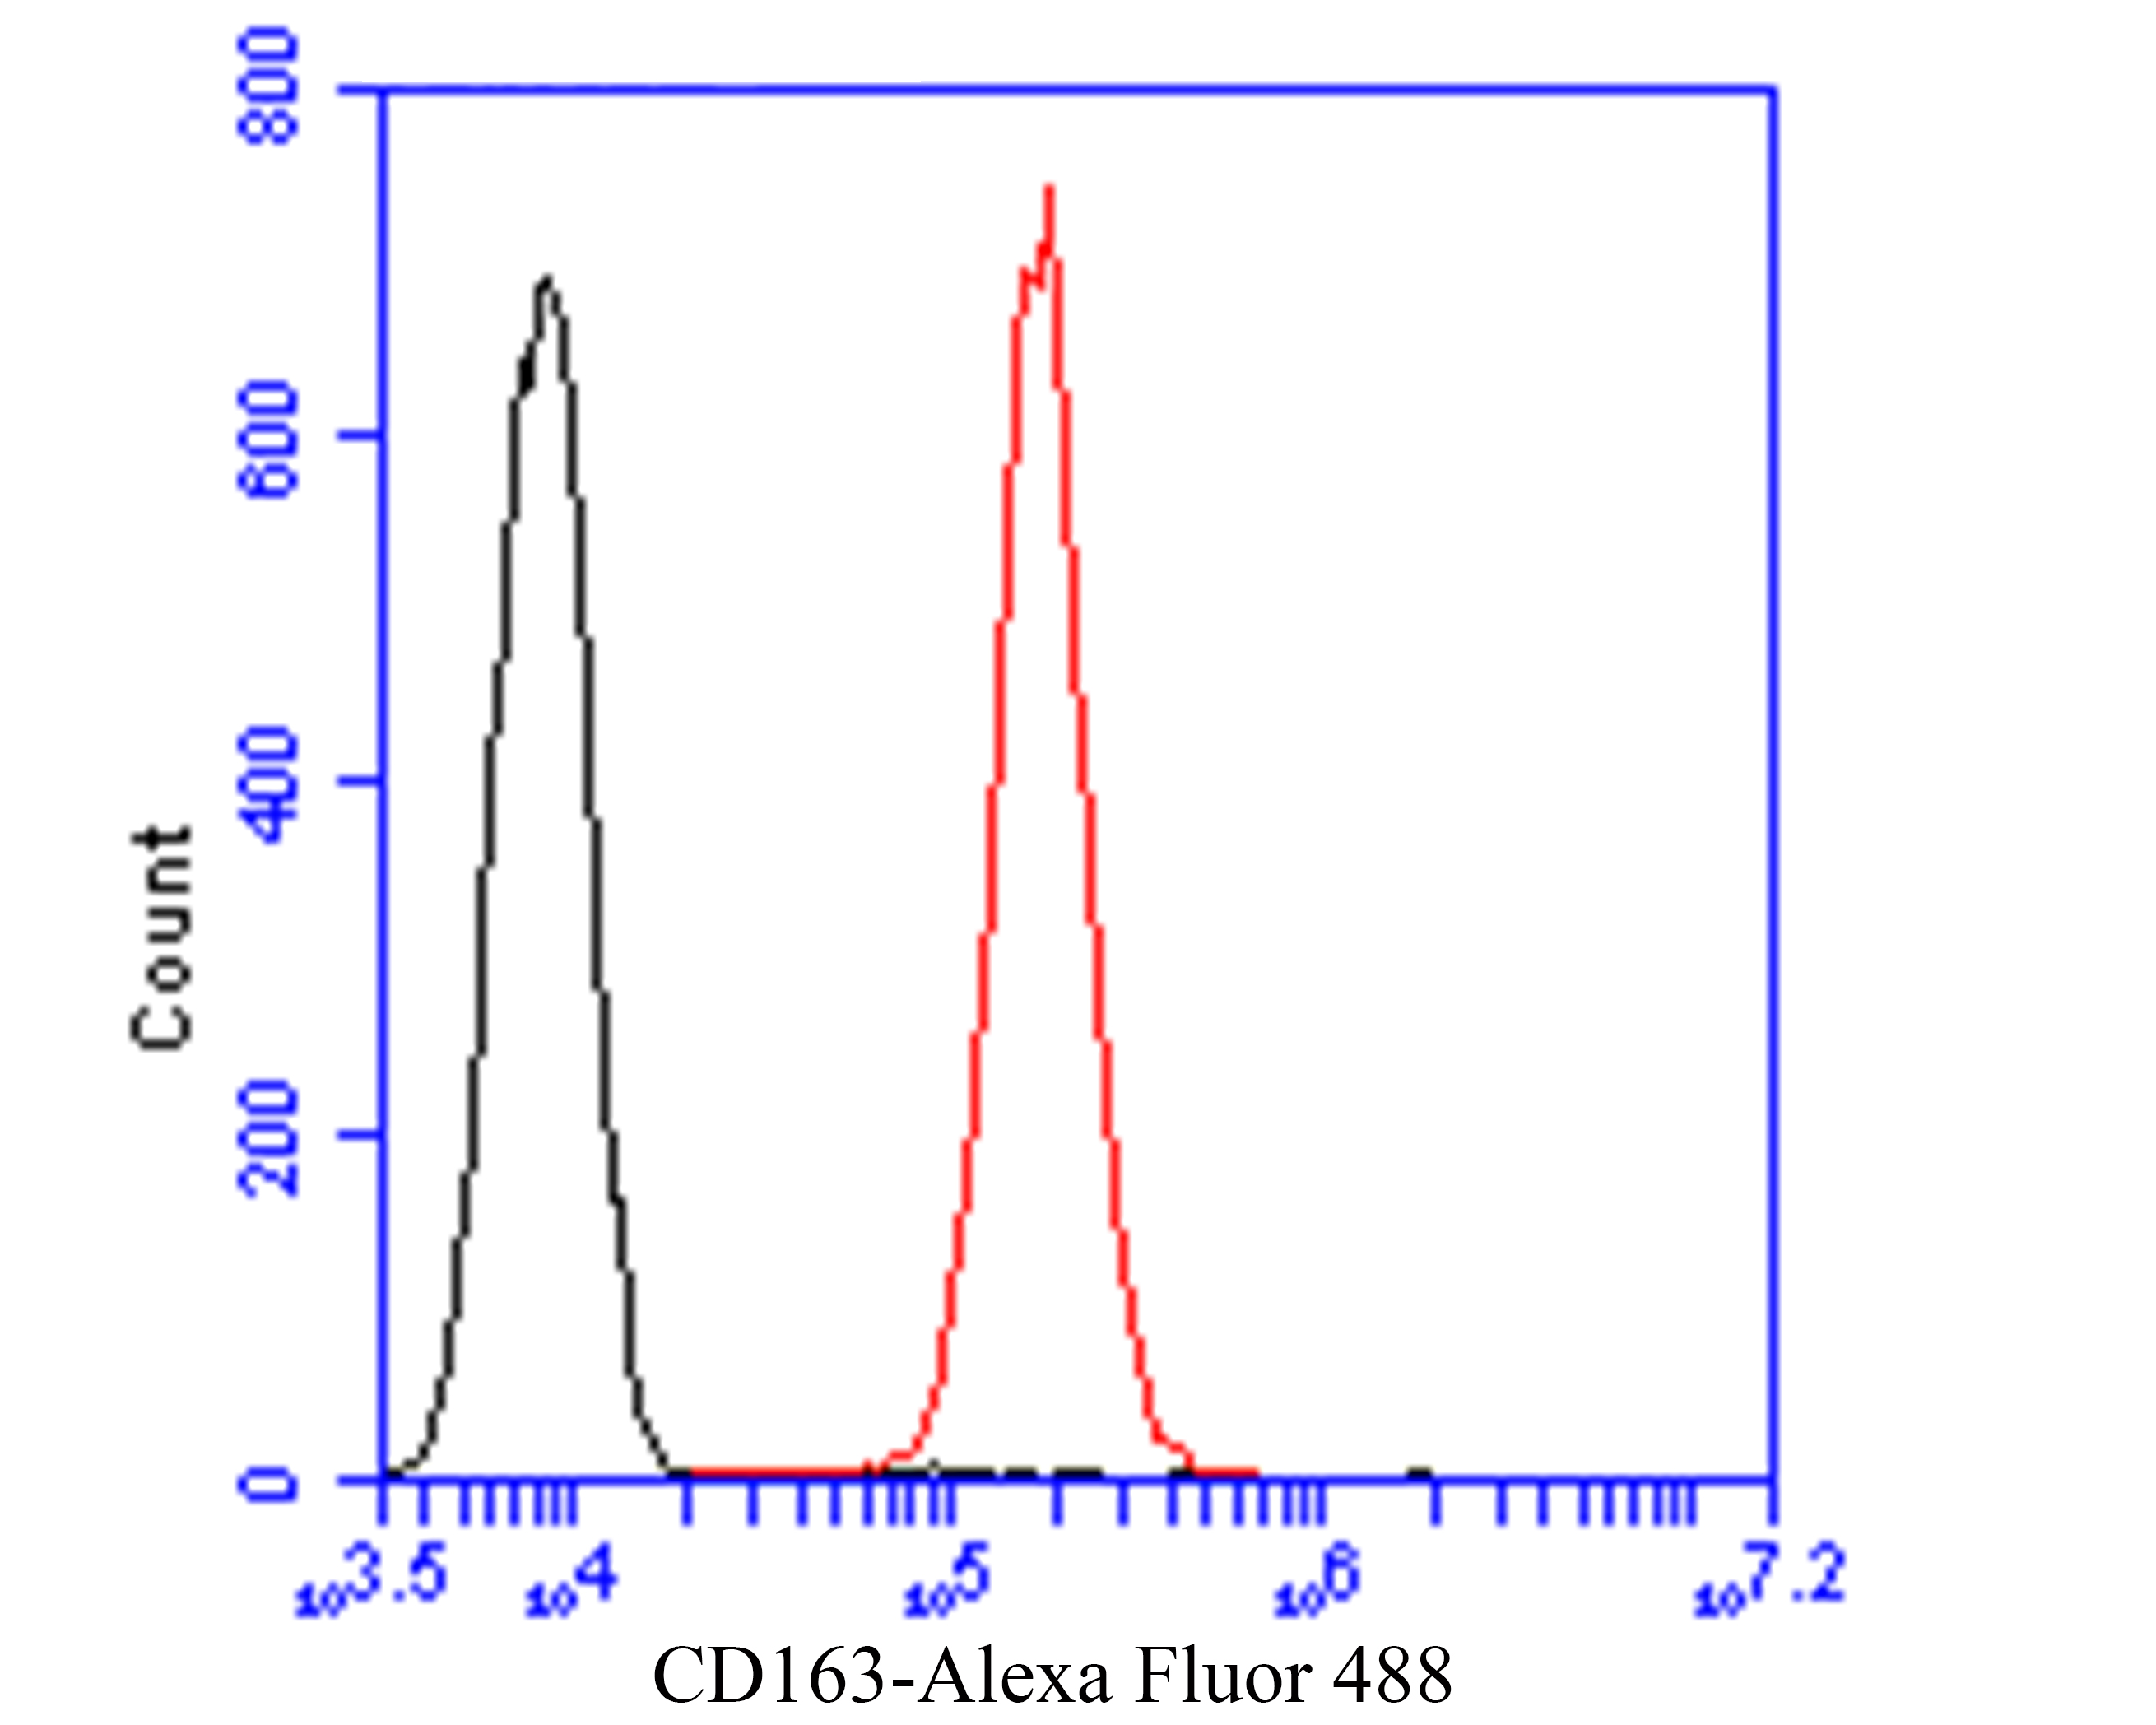 Flow cytometric analysis of CD163 was done on HepG2 cells. The cells were fixed, permeabilized and stained with the primary antibody (ER1901-22, 1/50) (red). After incubation of the primary antibody at room temperature for an hour, the cells were stained with a Alexa Fluor 488-conjugated Goat anti-Rabbit IgG Secondary antibody at 1/1000 dilution for 30 minutes.Unlabelled sample was used as a control (cells without incubation with primary antibody; black).